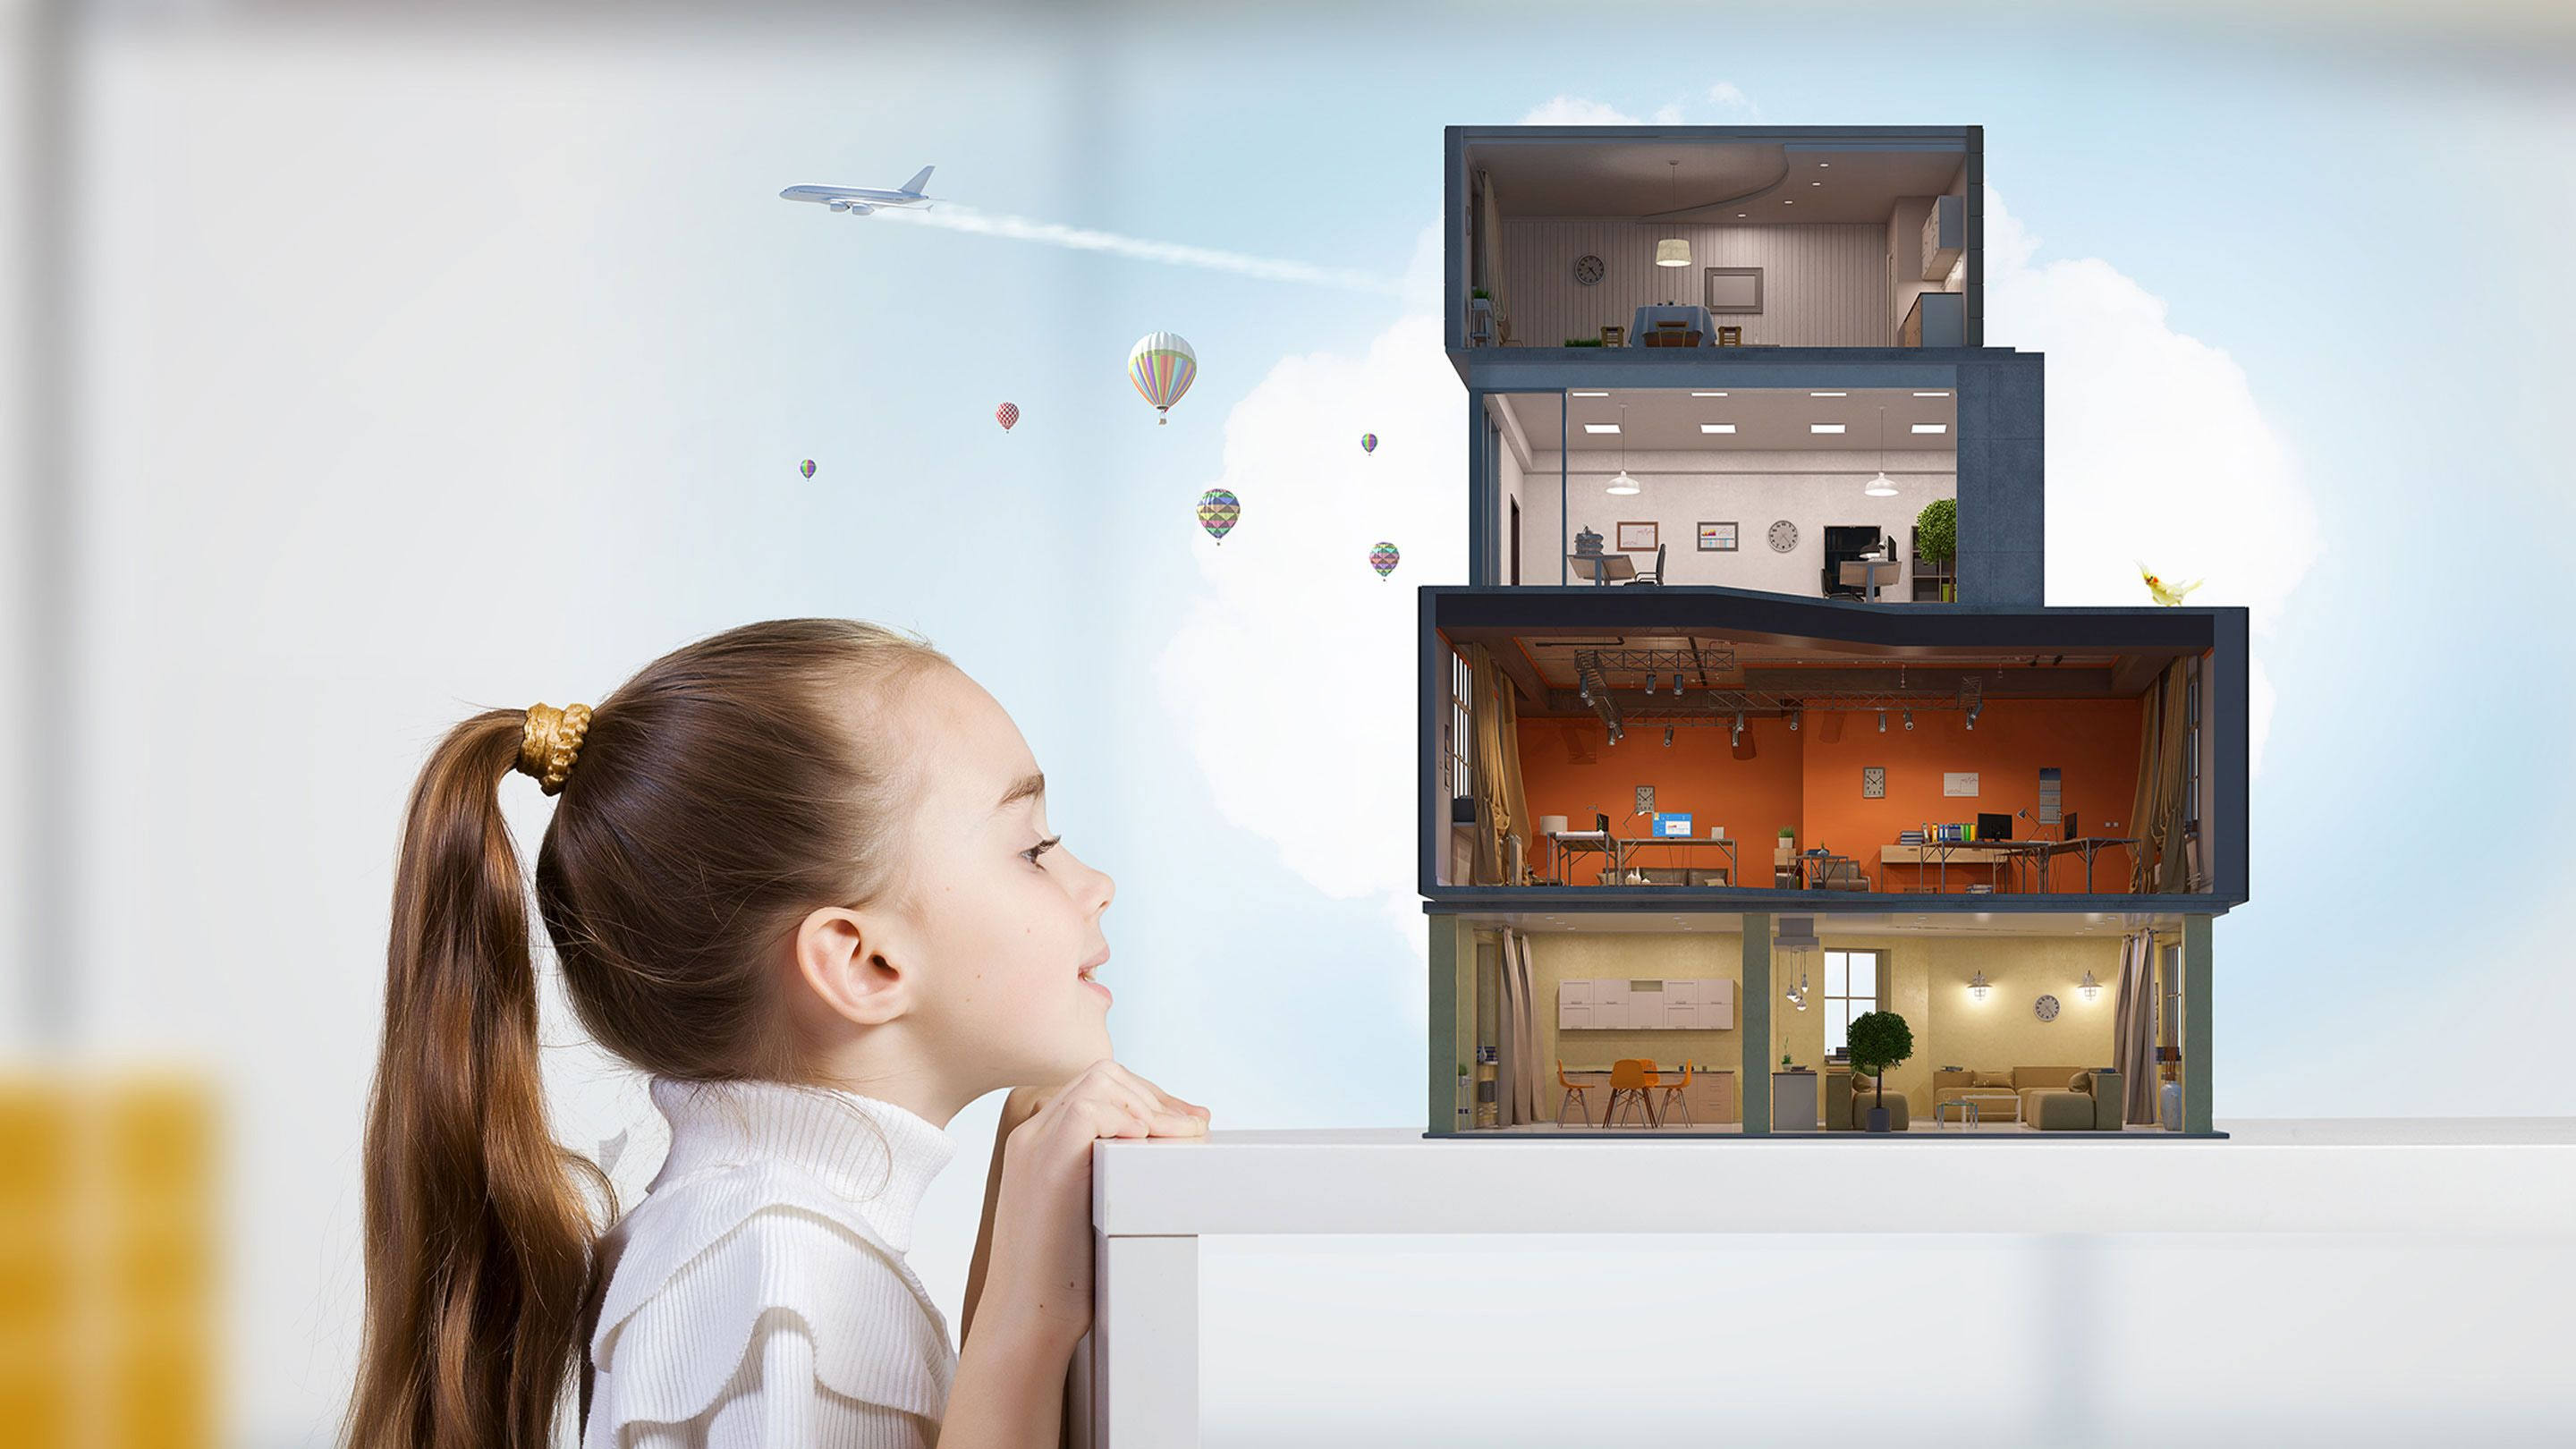 A young girl imagines that a pile of small boxes on a table are a house complete with electricity, with a plane and hot-air balloons flying above.